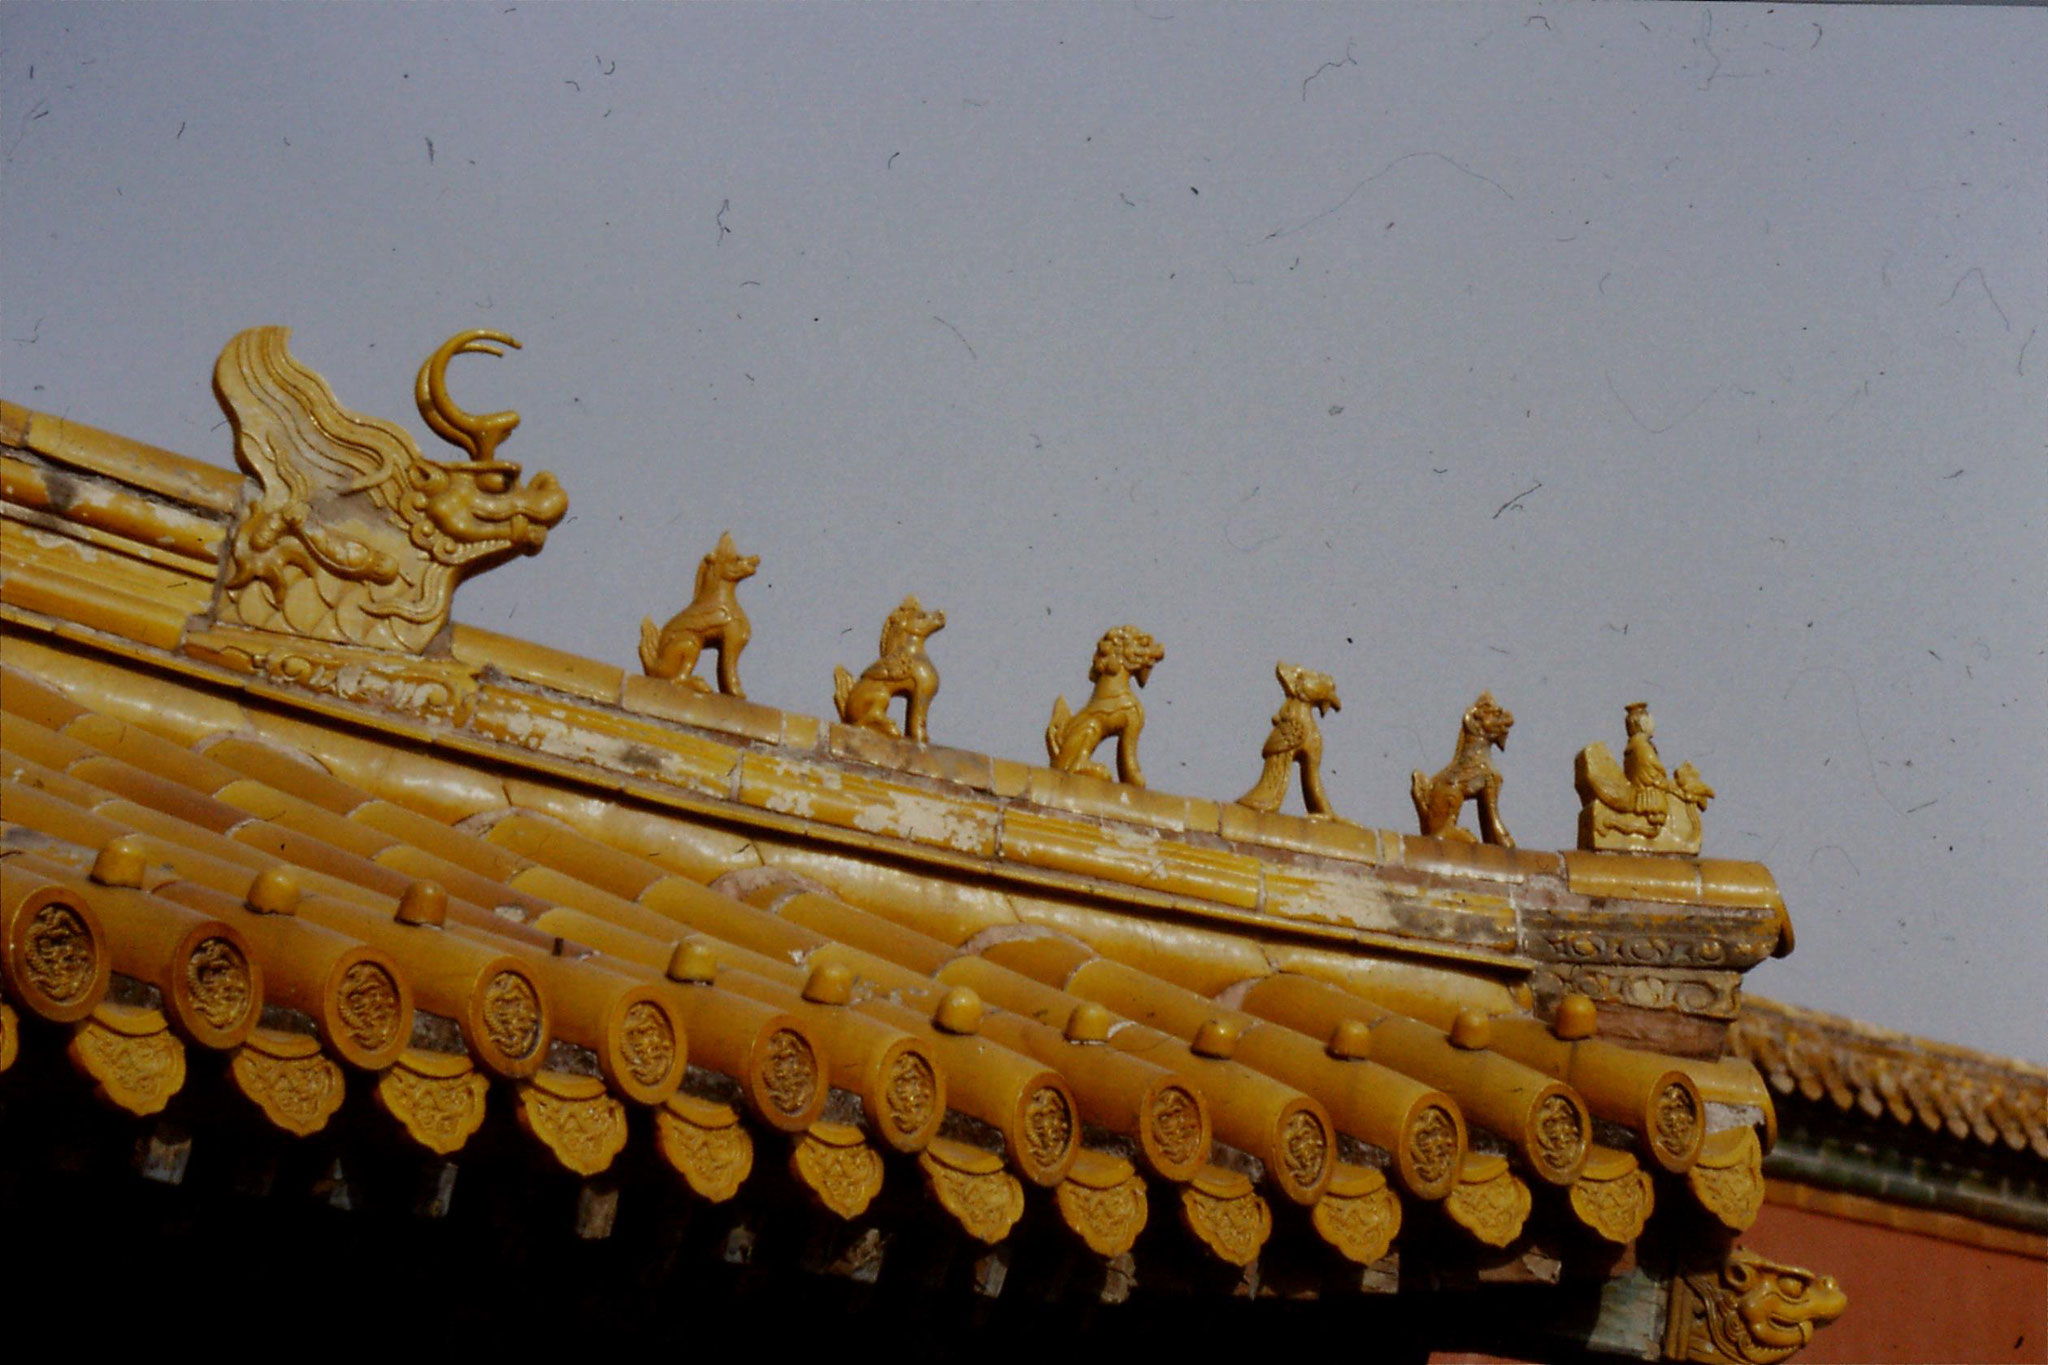 30/10/1988: 34: Forbidden City